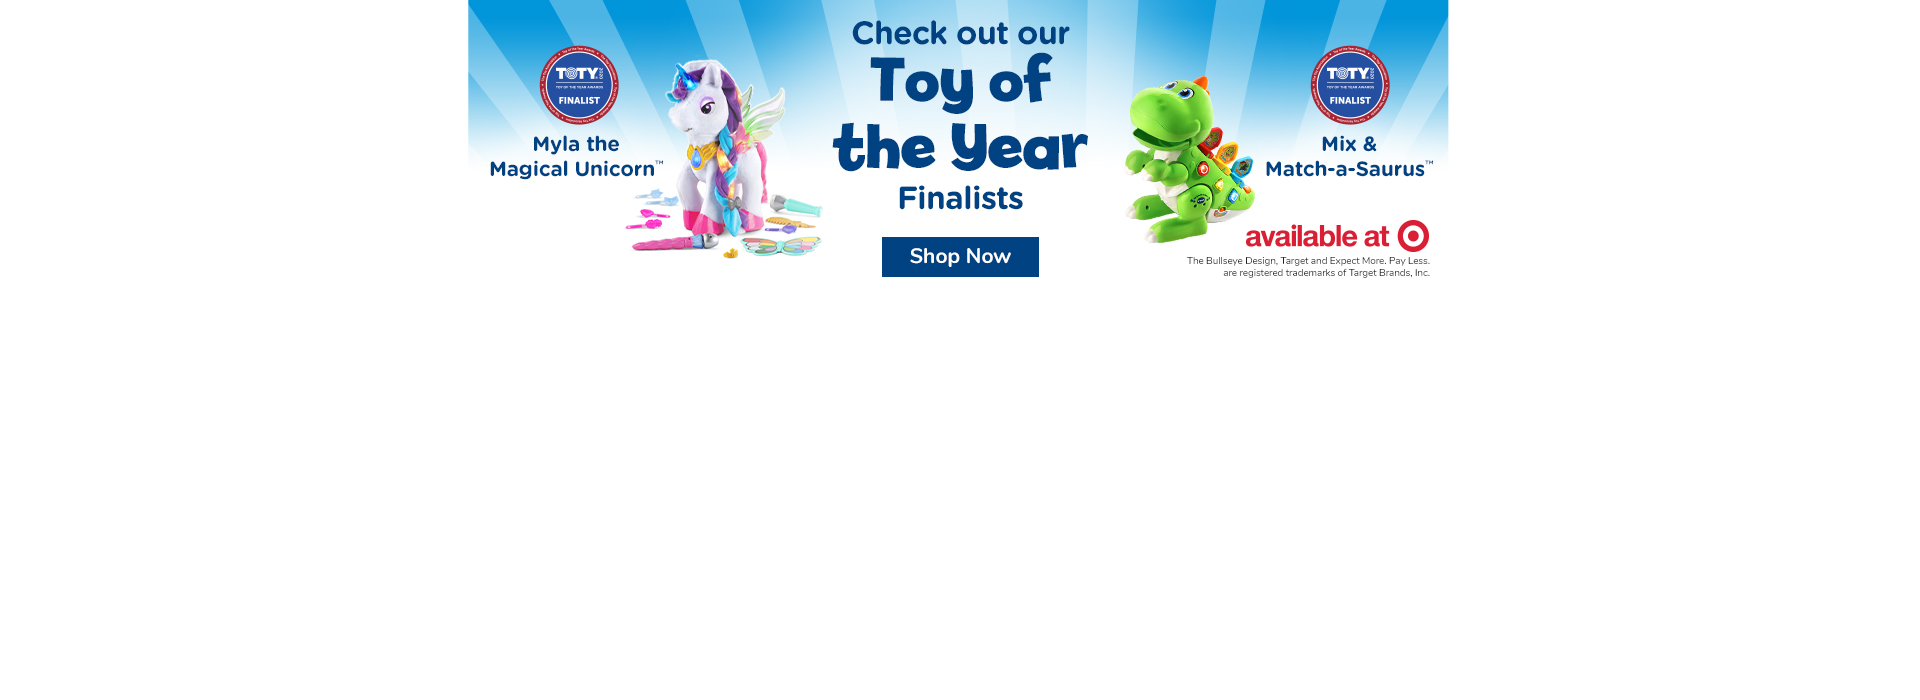 Check out our Toy of the Year Finalists at Target: Myla and Mix n Match Saurus & Myla